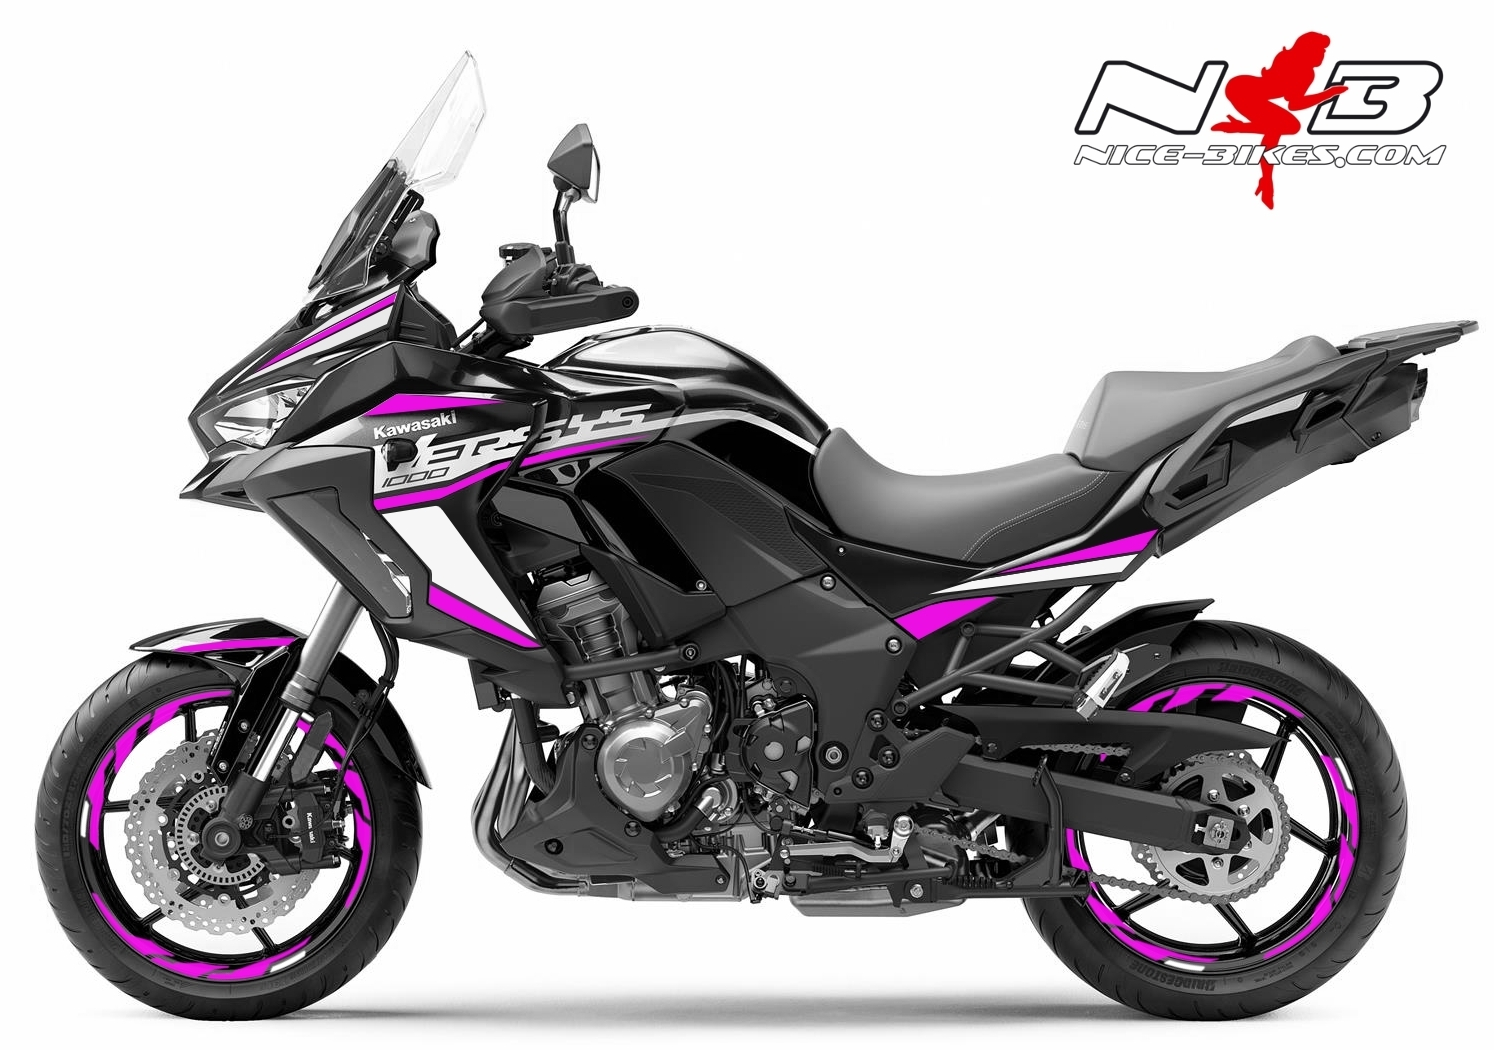 Foliendesign Kawasaki Versys 1000 Bj. 2020 Pretty Pink